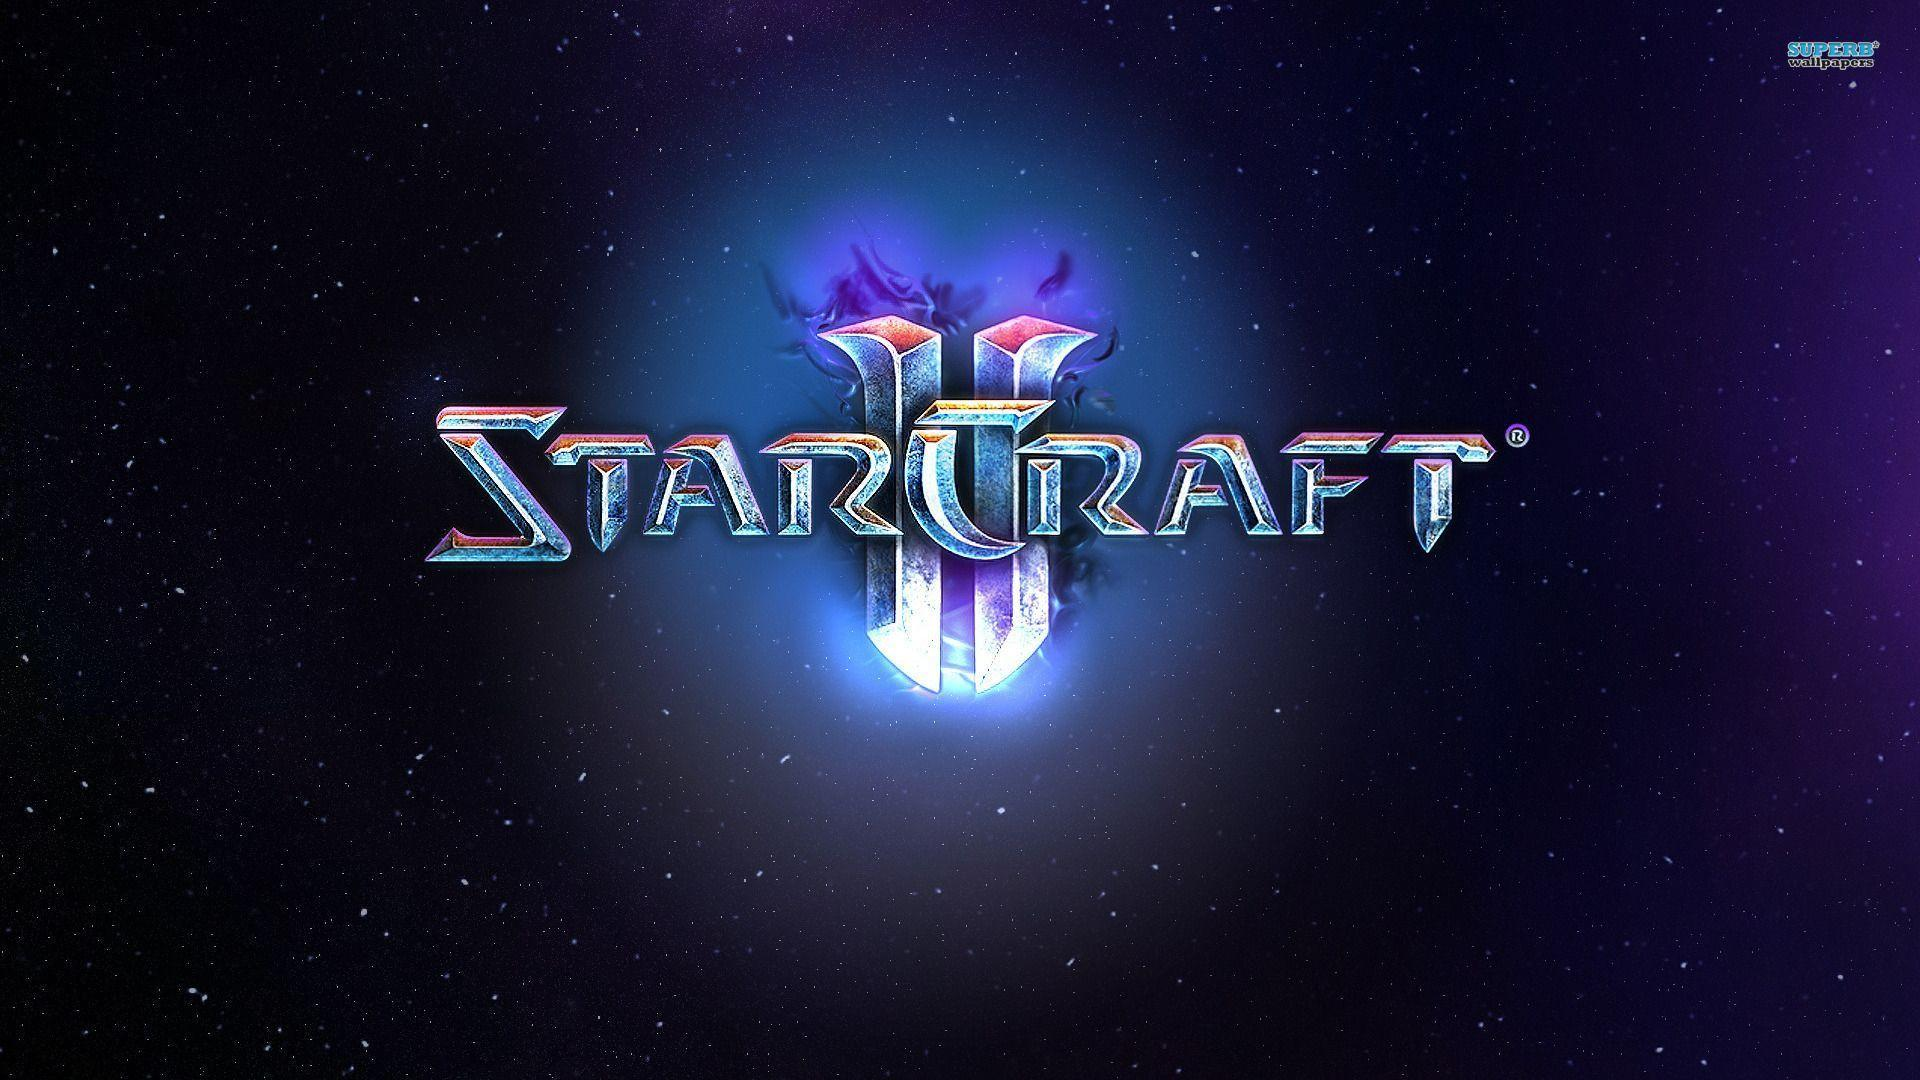 Starcraft Wallpapers Download 35115 HD Pictures